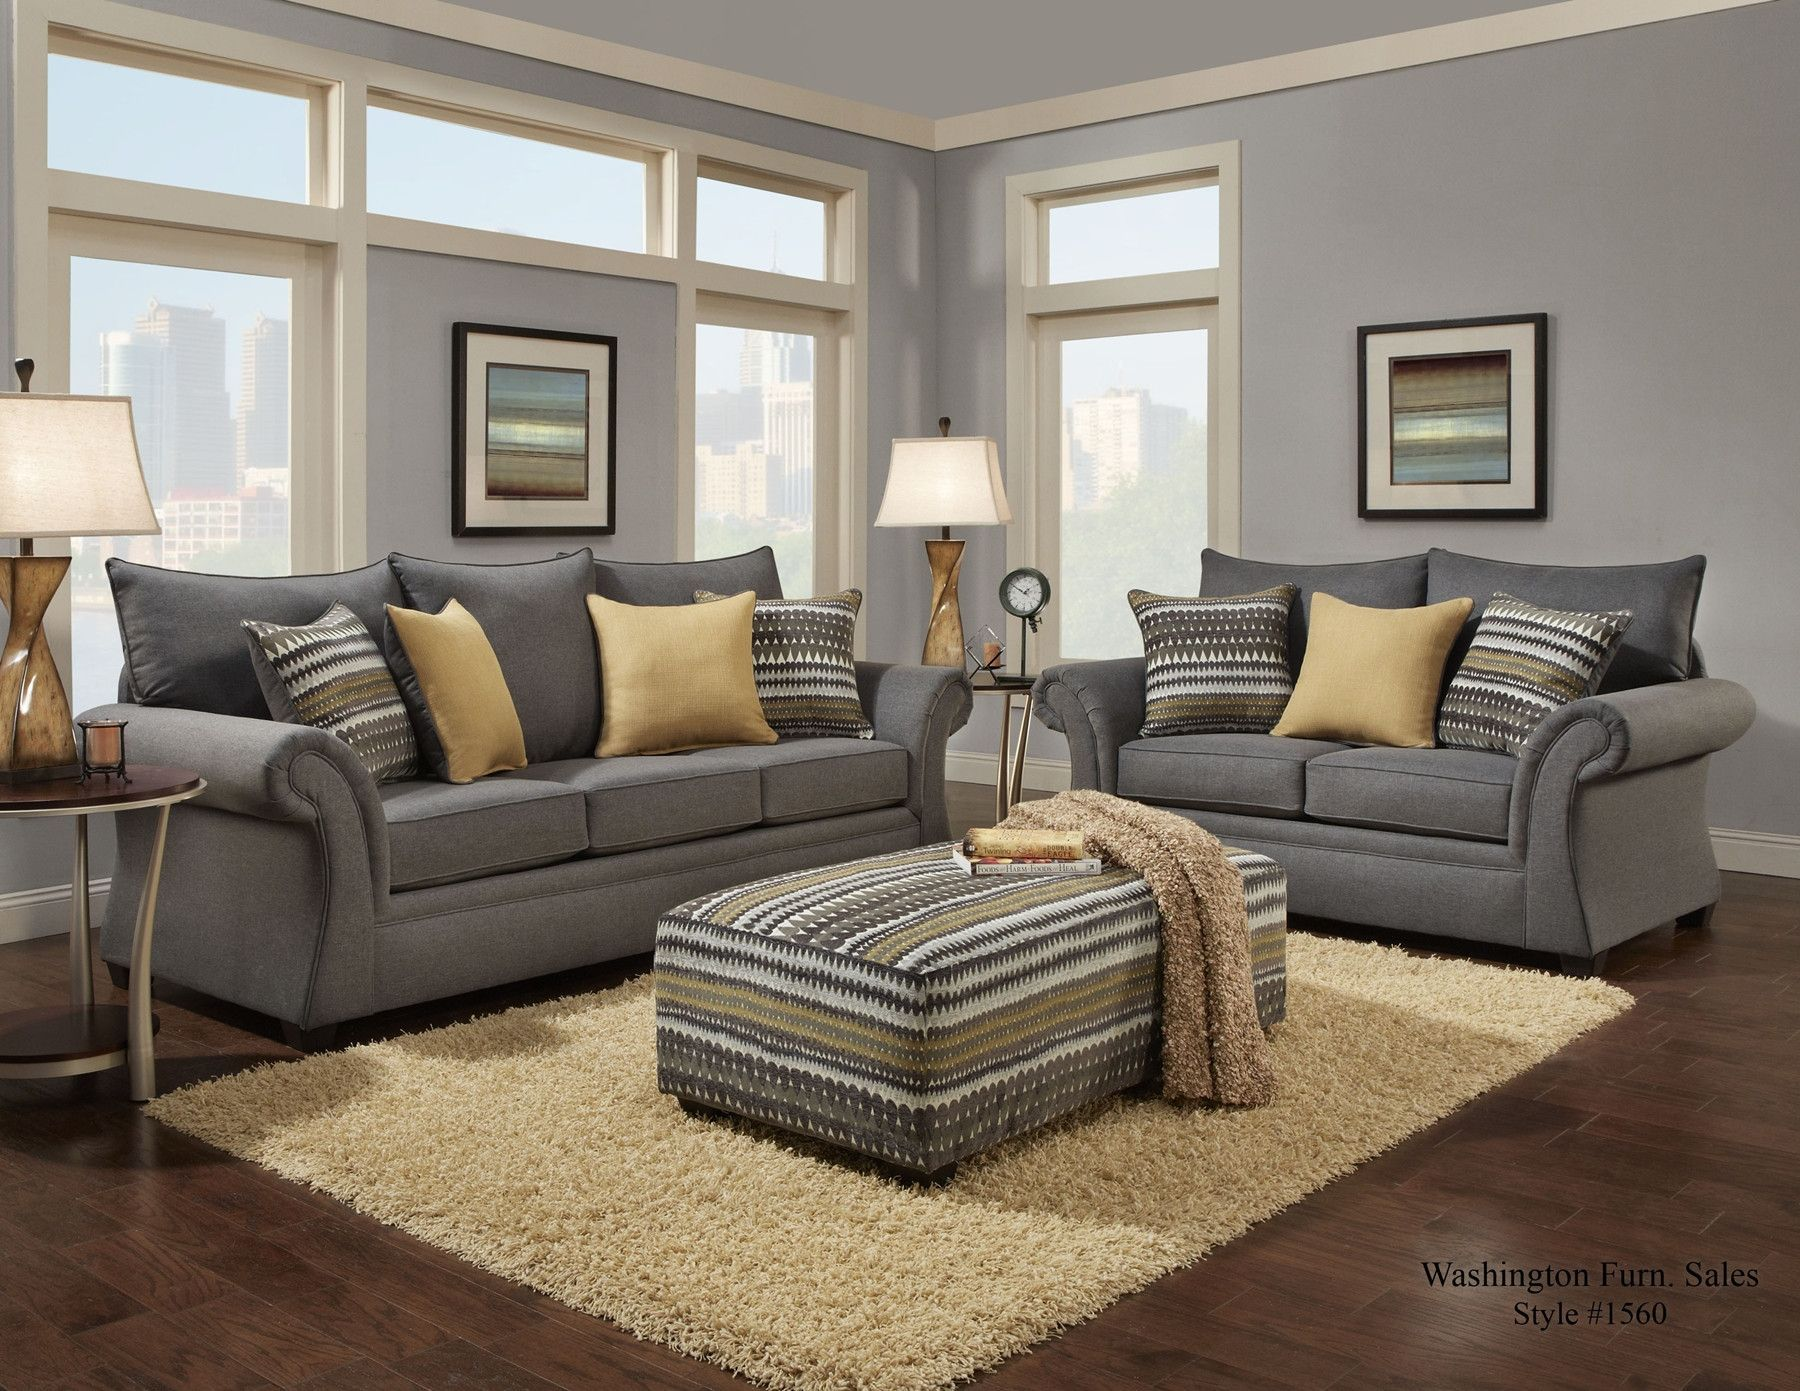 Complete Wohnzimmer 1560 The Contemporary Living Room Set Grey New Home